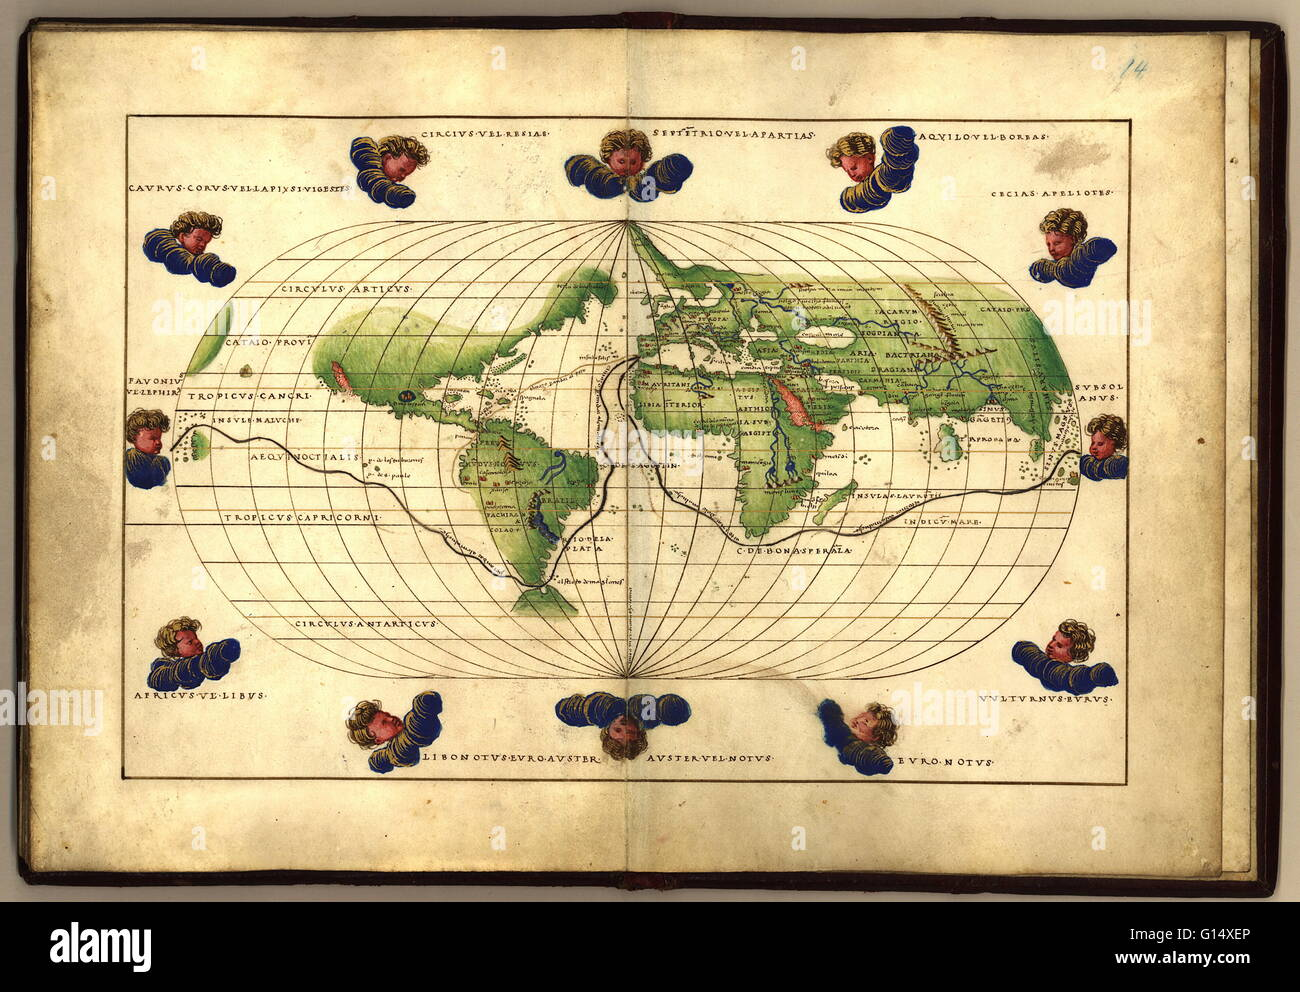 Magellan's route around the world, in a 1544 copy of the Agnese ...